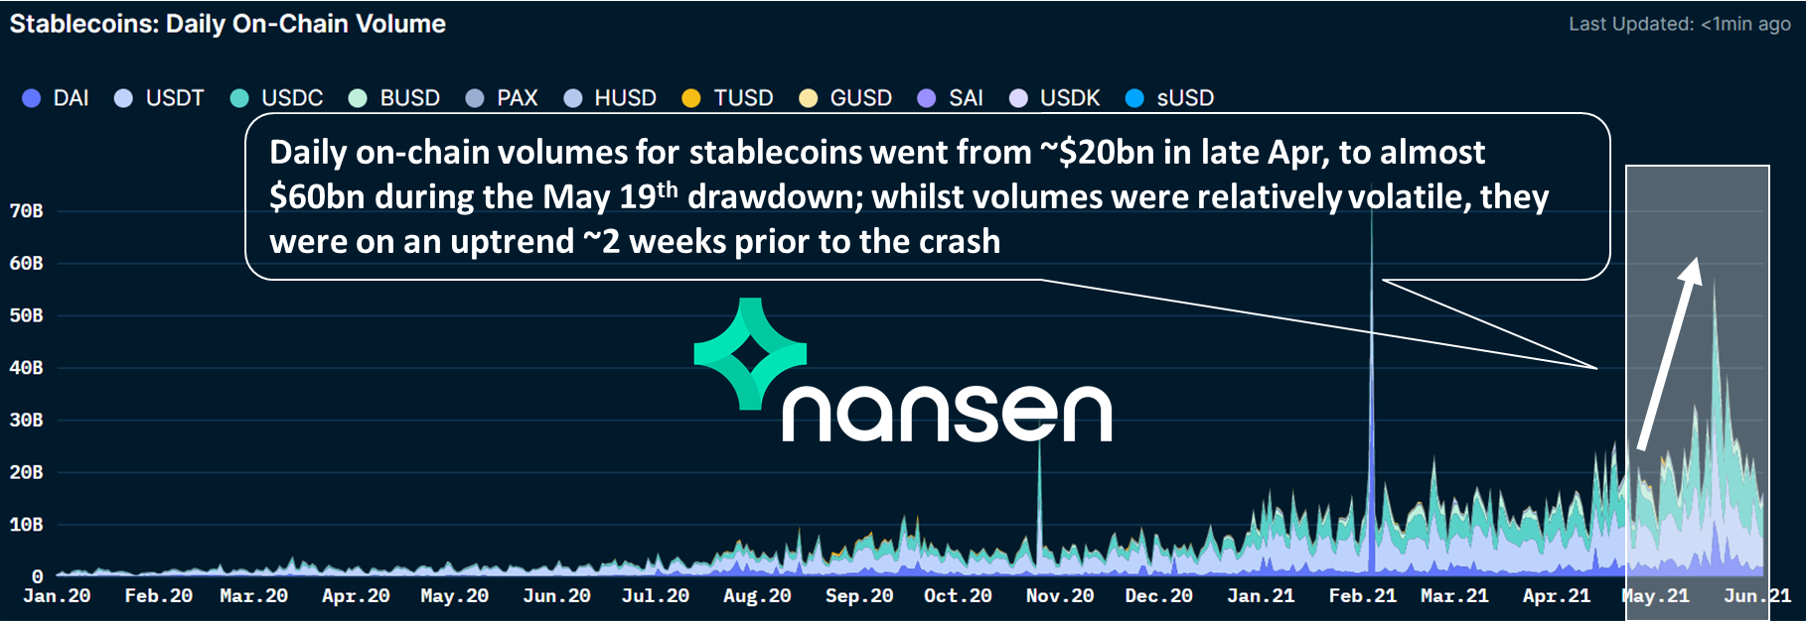 Nansen - Daily on-chain volume for stablecoins